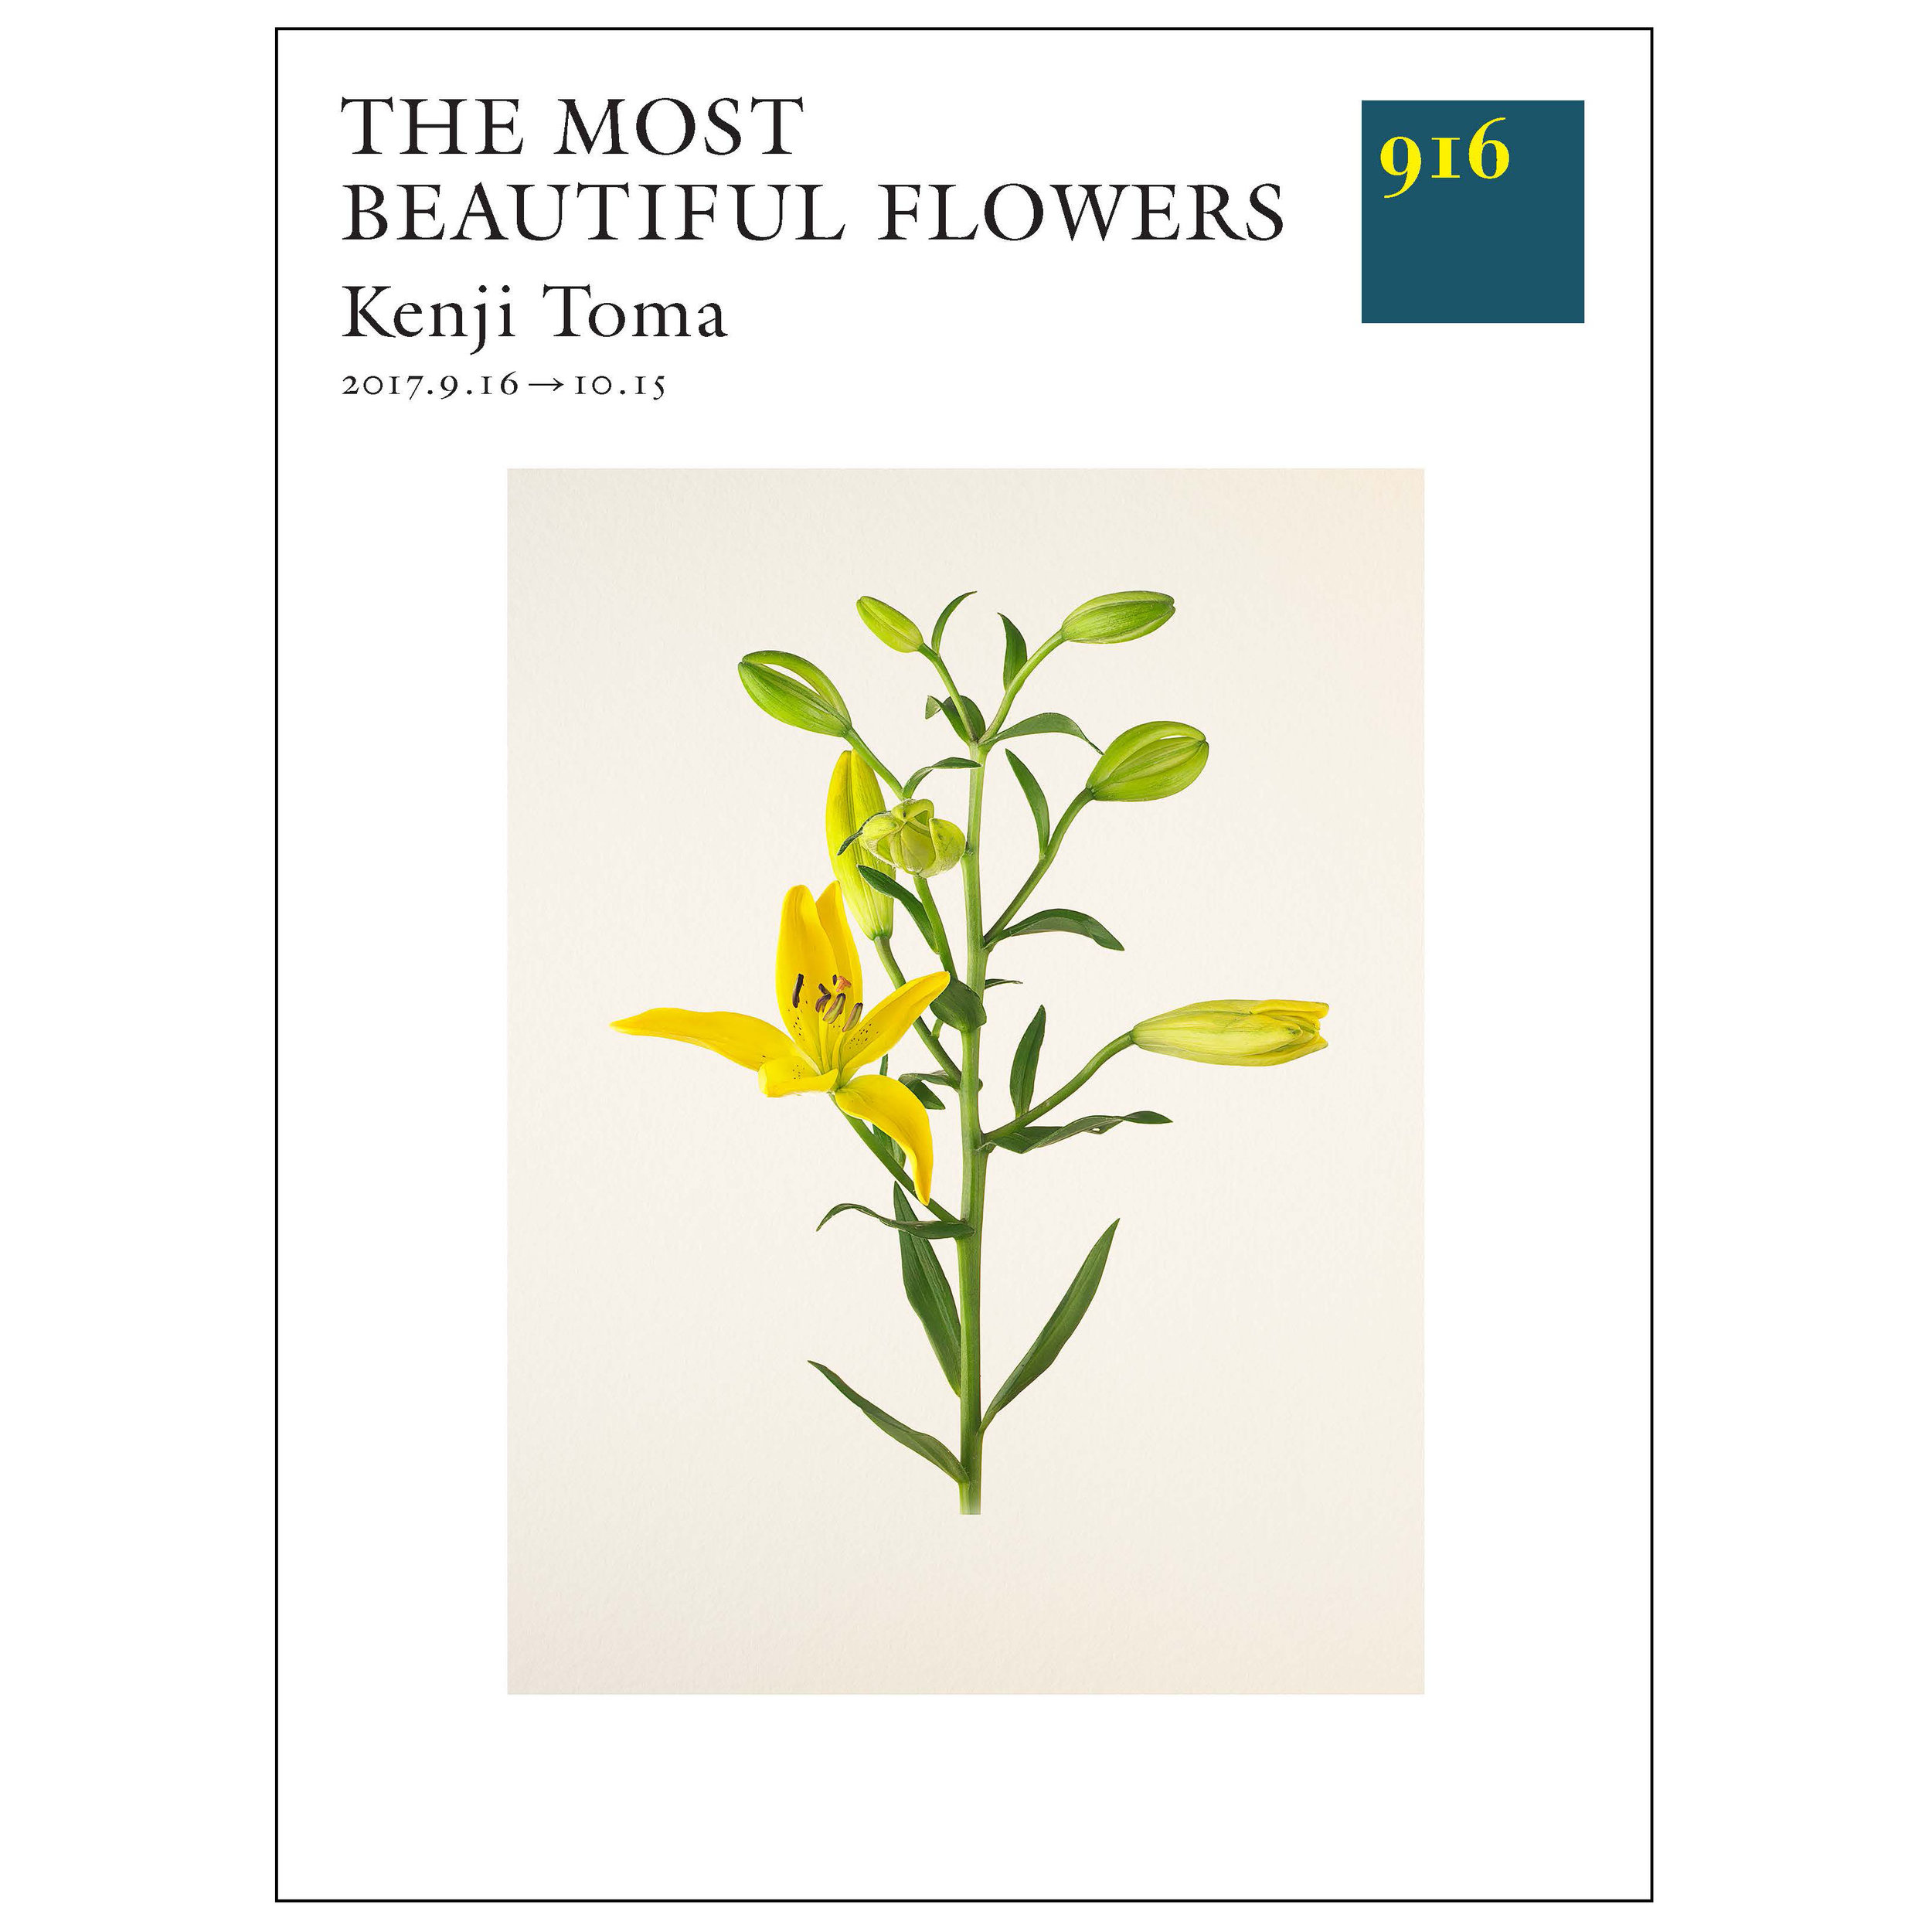 The Most Beautiful Flowers   Gallery 916, Tokyo 09/16 - 11/12/2017